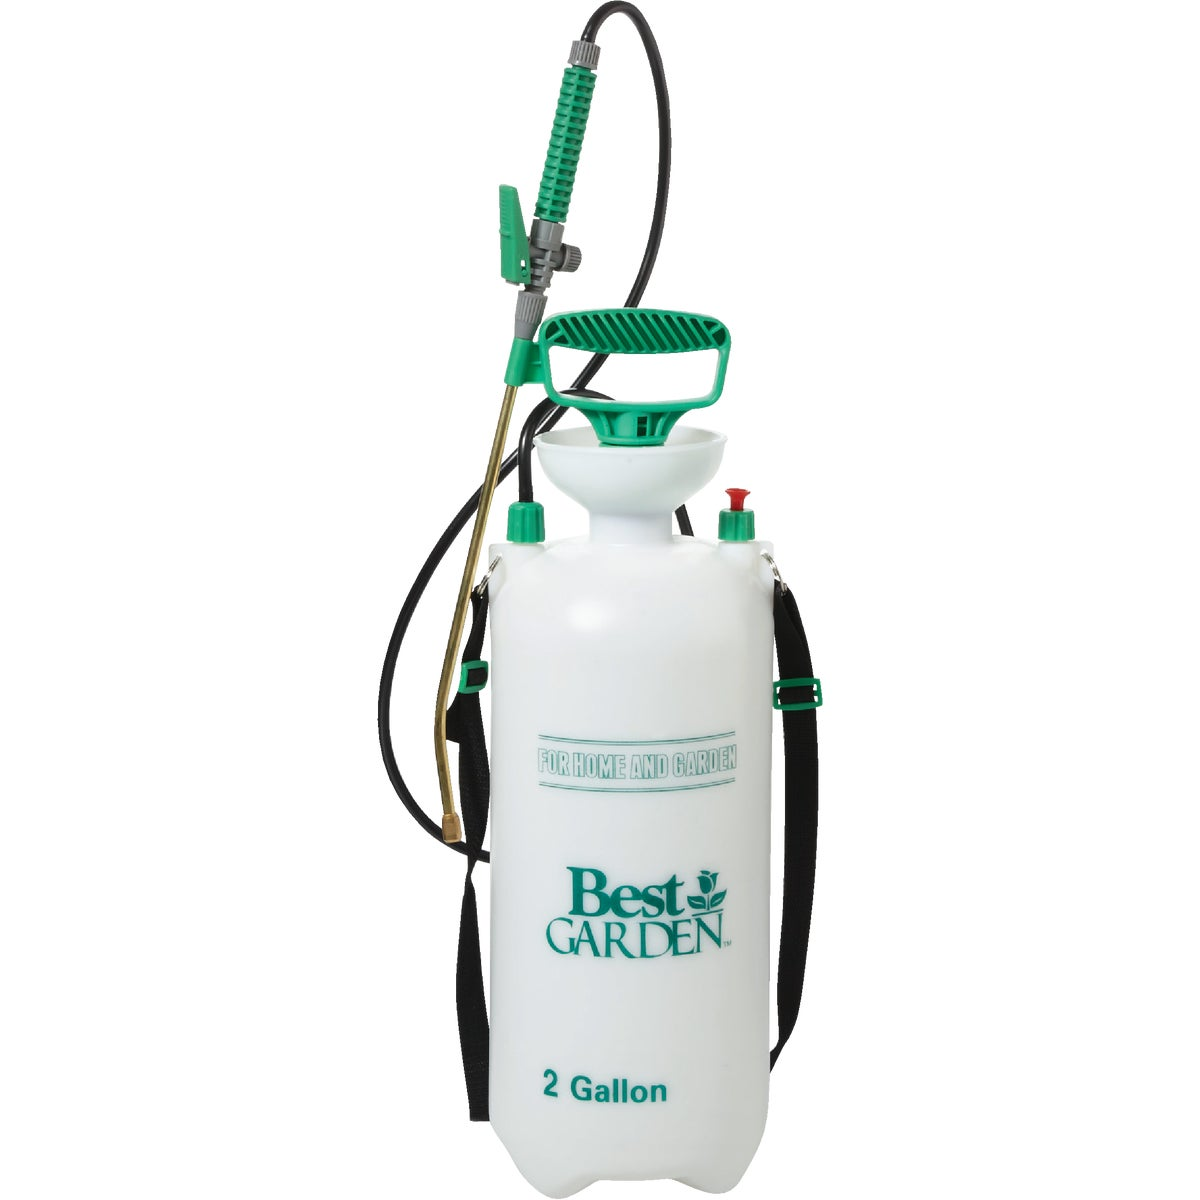 2GAL TANK SPRAYER - SX-8B by Do it Best